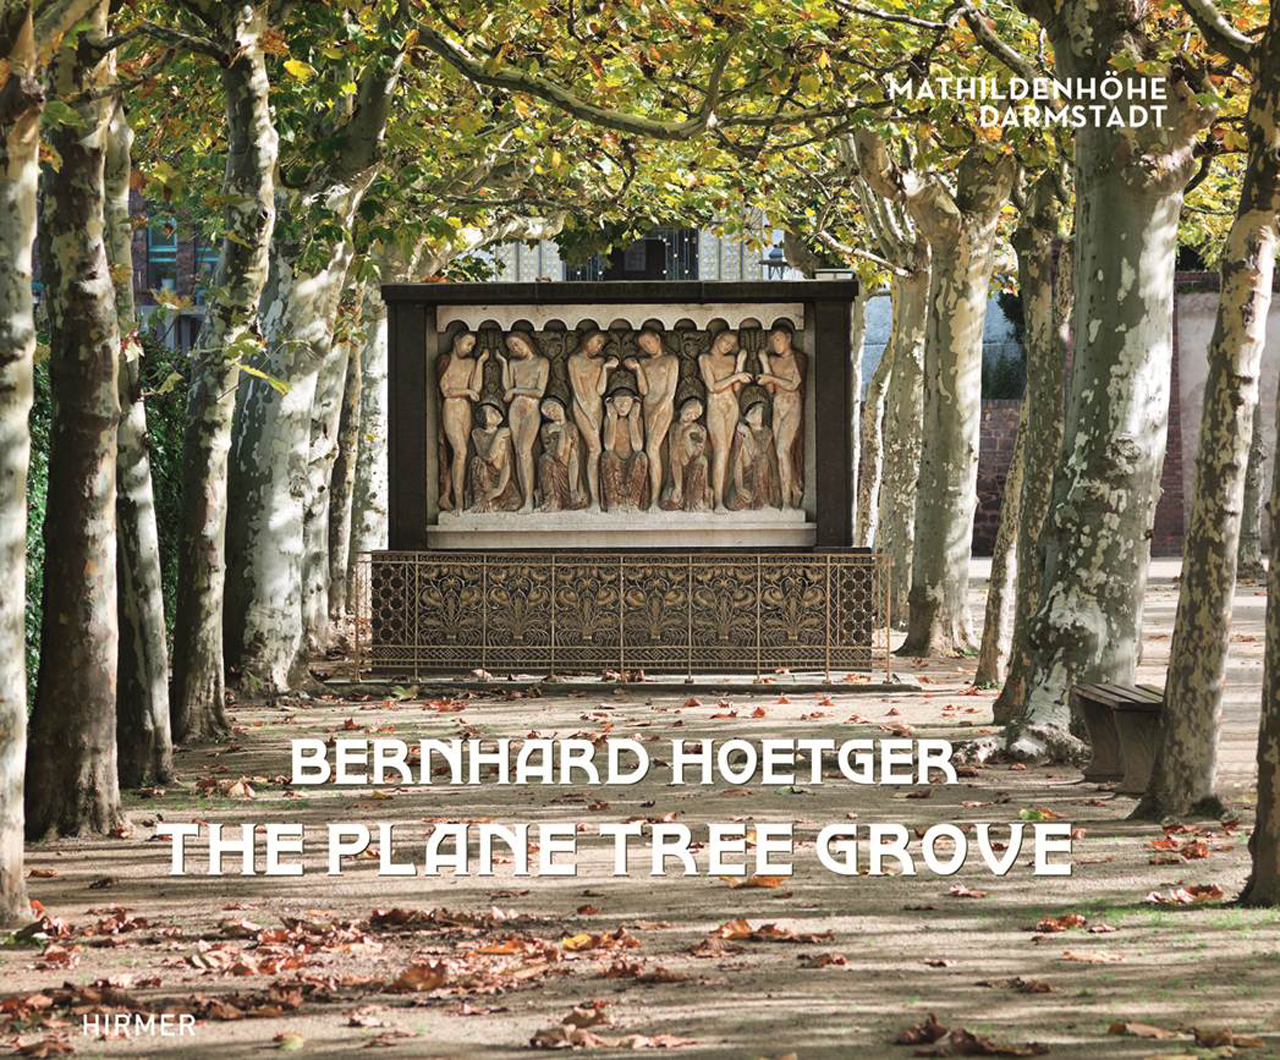 Bernhard Hoetger - The Plane Tree Grove: A Total Artwork on the Mathildenhöhe